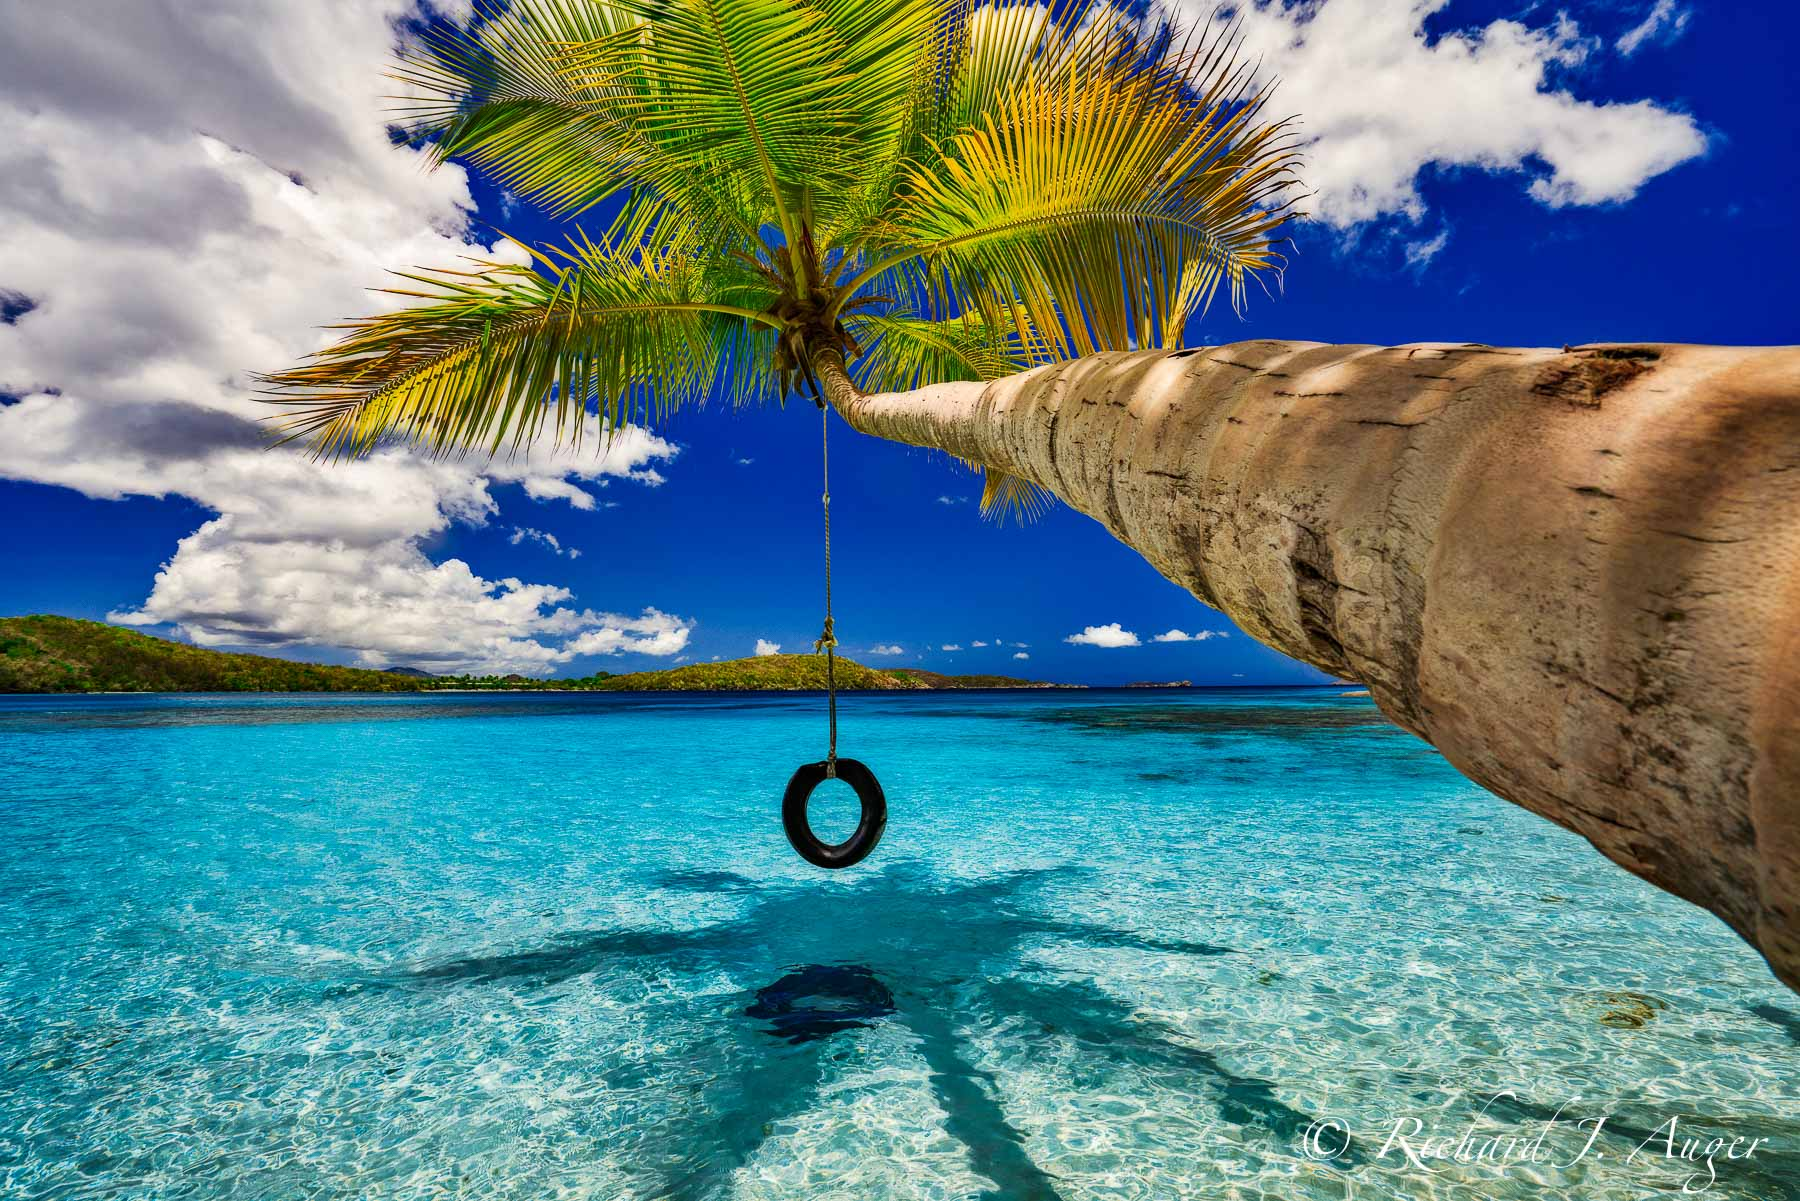 Oppenheimer Beach, St John, US Virgin Island, Palm Tree, Tire Swing, Caribbean, Paradise, Ocean, Beach